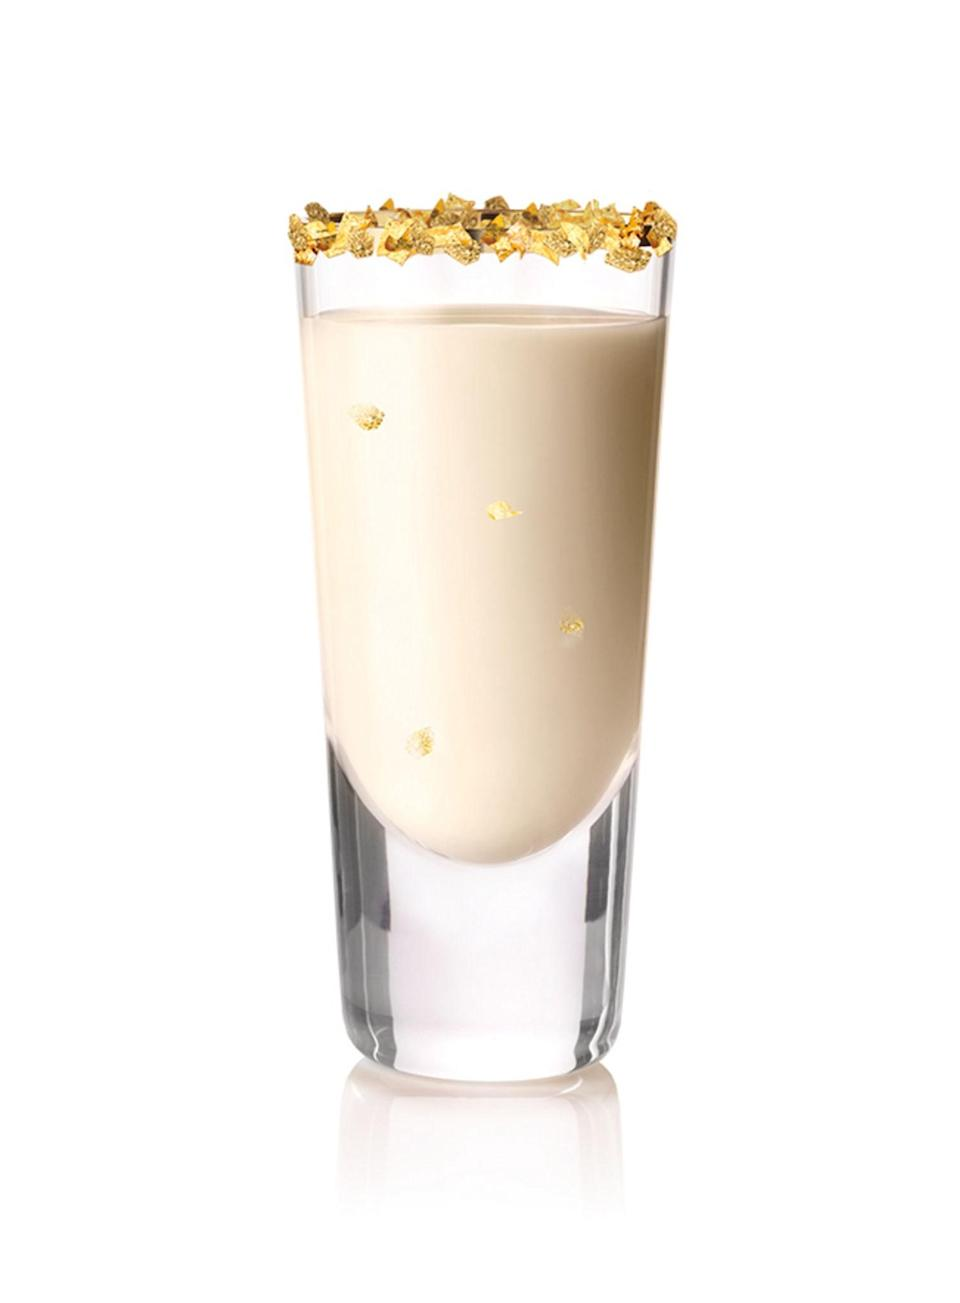 <p>1 ounce Baileys Vanilla Cinnamon Liqueur</p> <p>1/2 ounce Goldschläger Cinnamon Schnapps</p> <p>Edible gold flakes to rim glass (optional)</p> <p>Combine Baileys Vanilla Cinnamon and Goldschläger Cinnamon Schnapps in a cocktail shaker with ice and shake vigorously. Strain contents into a chilled shot glass rimmed with edible gold flakes.</p>